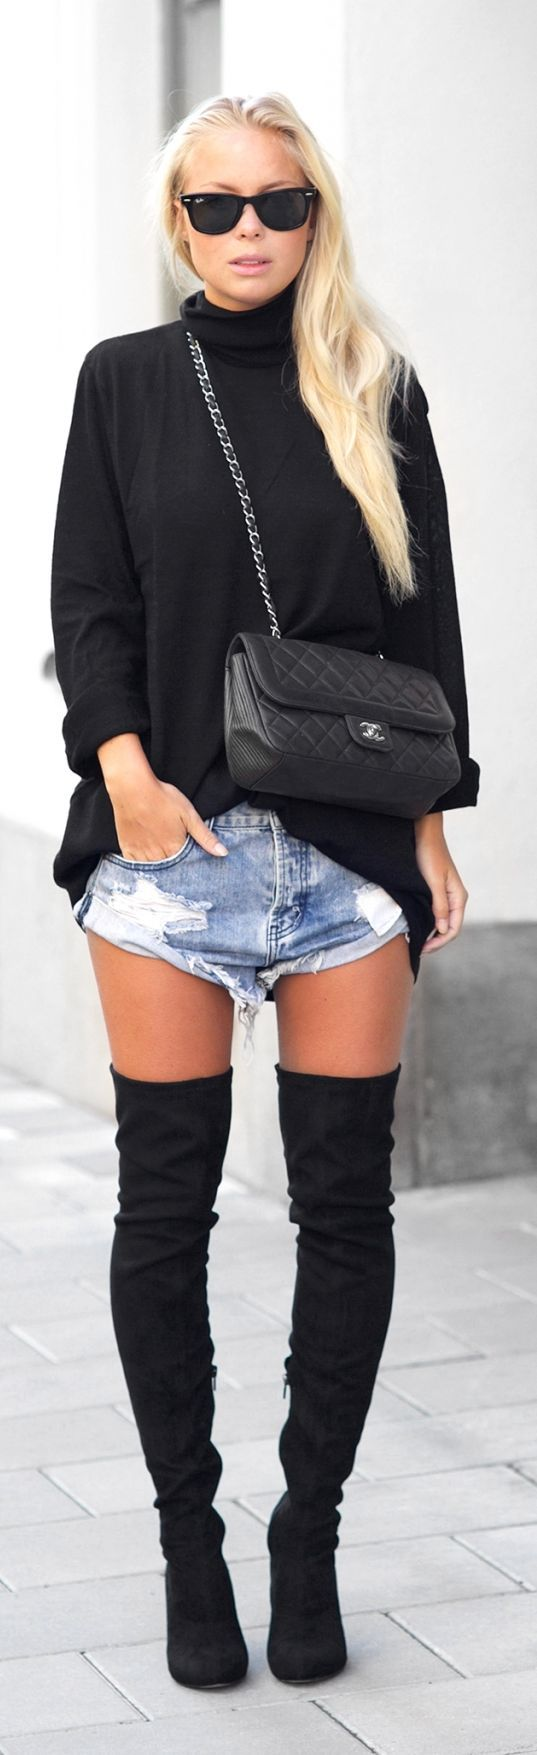 Ripped Loose Shorts Fall Inspo by Victoria Tornegren